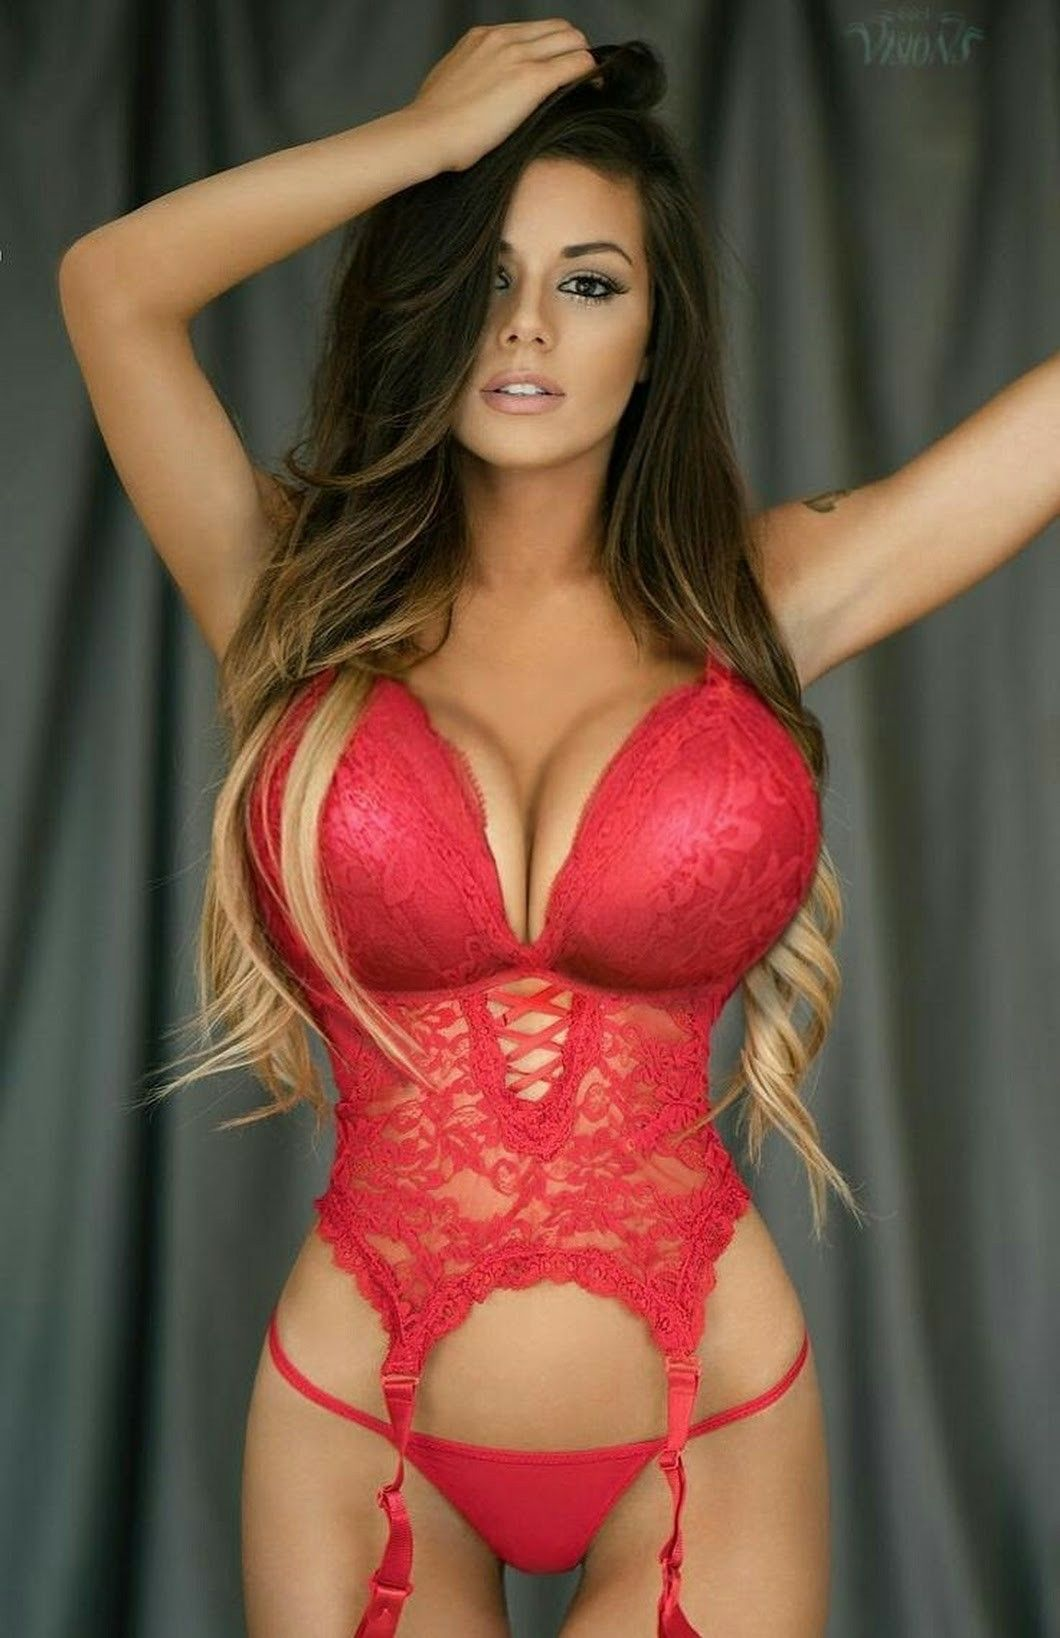 Busty hot lingerie